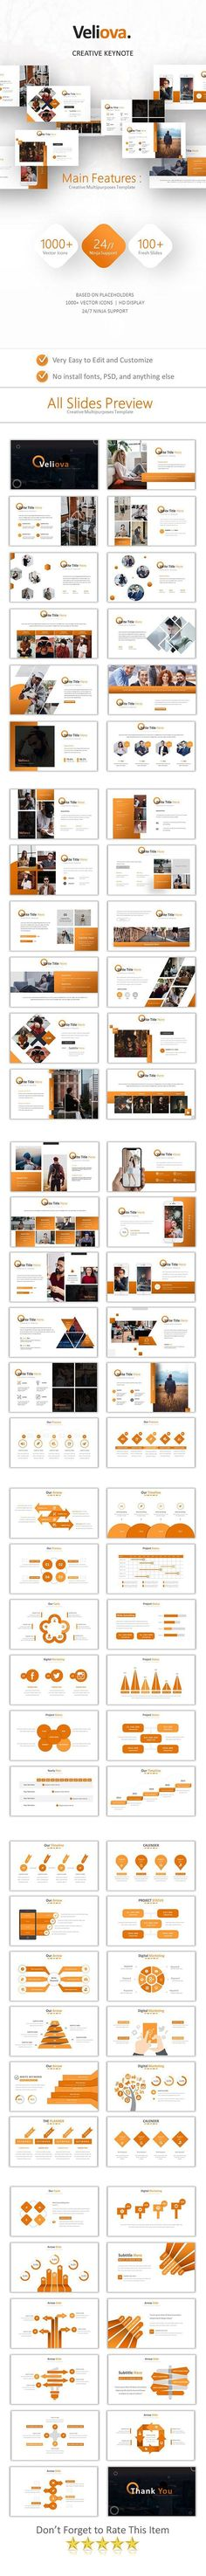 Buy Veliova Keynote Template by Pro_Tools_Design on GraphicRiver. Main Fitures: Unique Slides Based on Placeholders HD Display Keynote Files Vector Icons Highly Editab. Presentation Design, Presentation Templates, Keynote Presentation, Creative Powerpoint Templates, Keynote Template, Tool Design, Verona, Social Media, Mockup